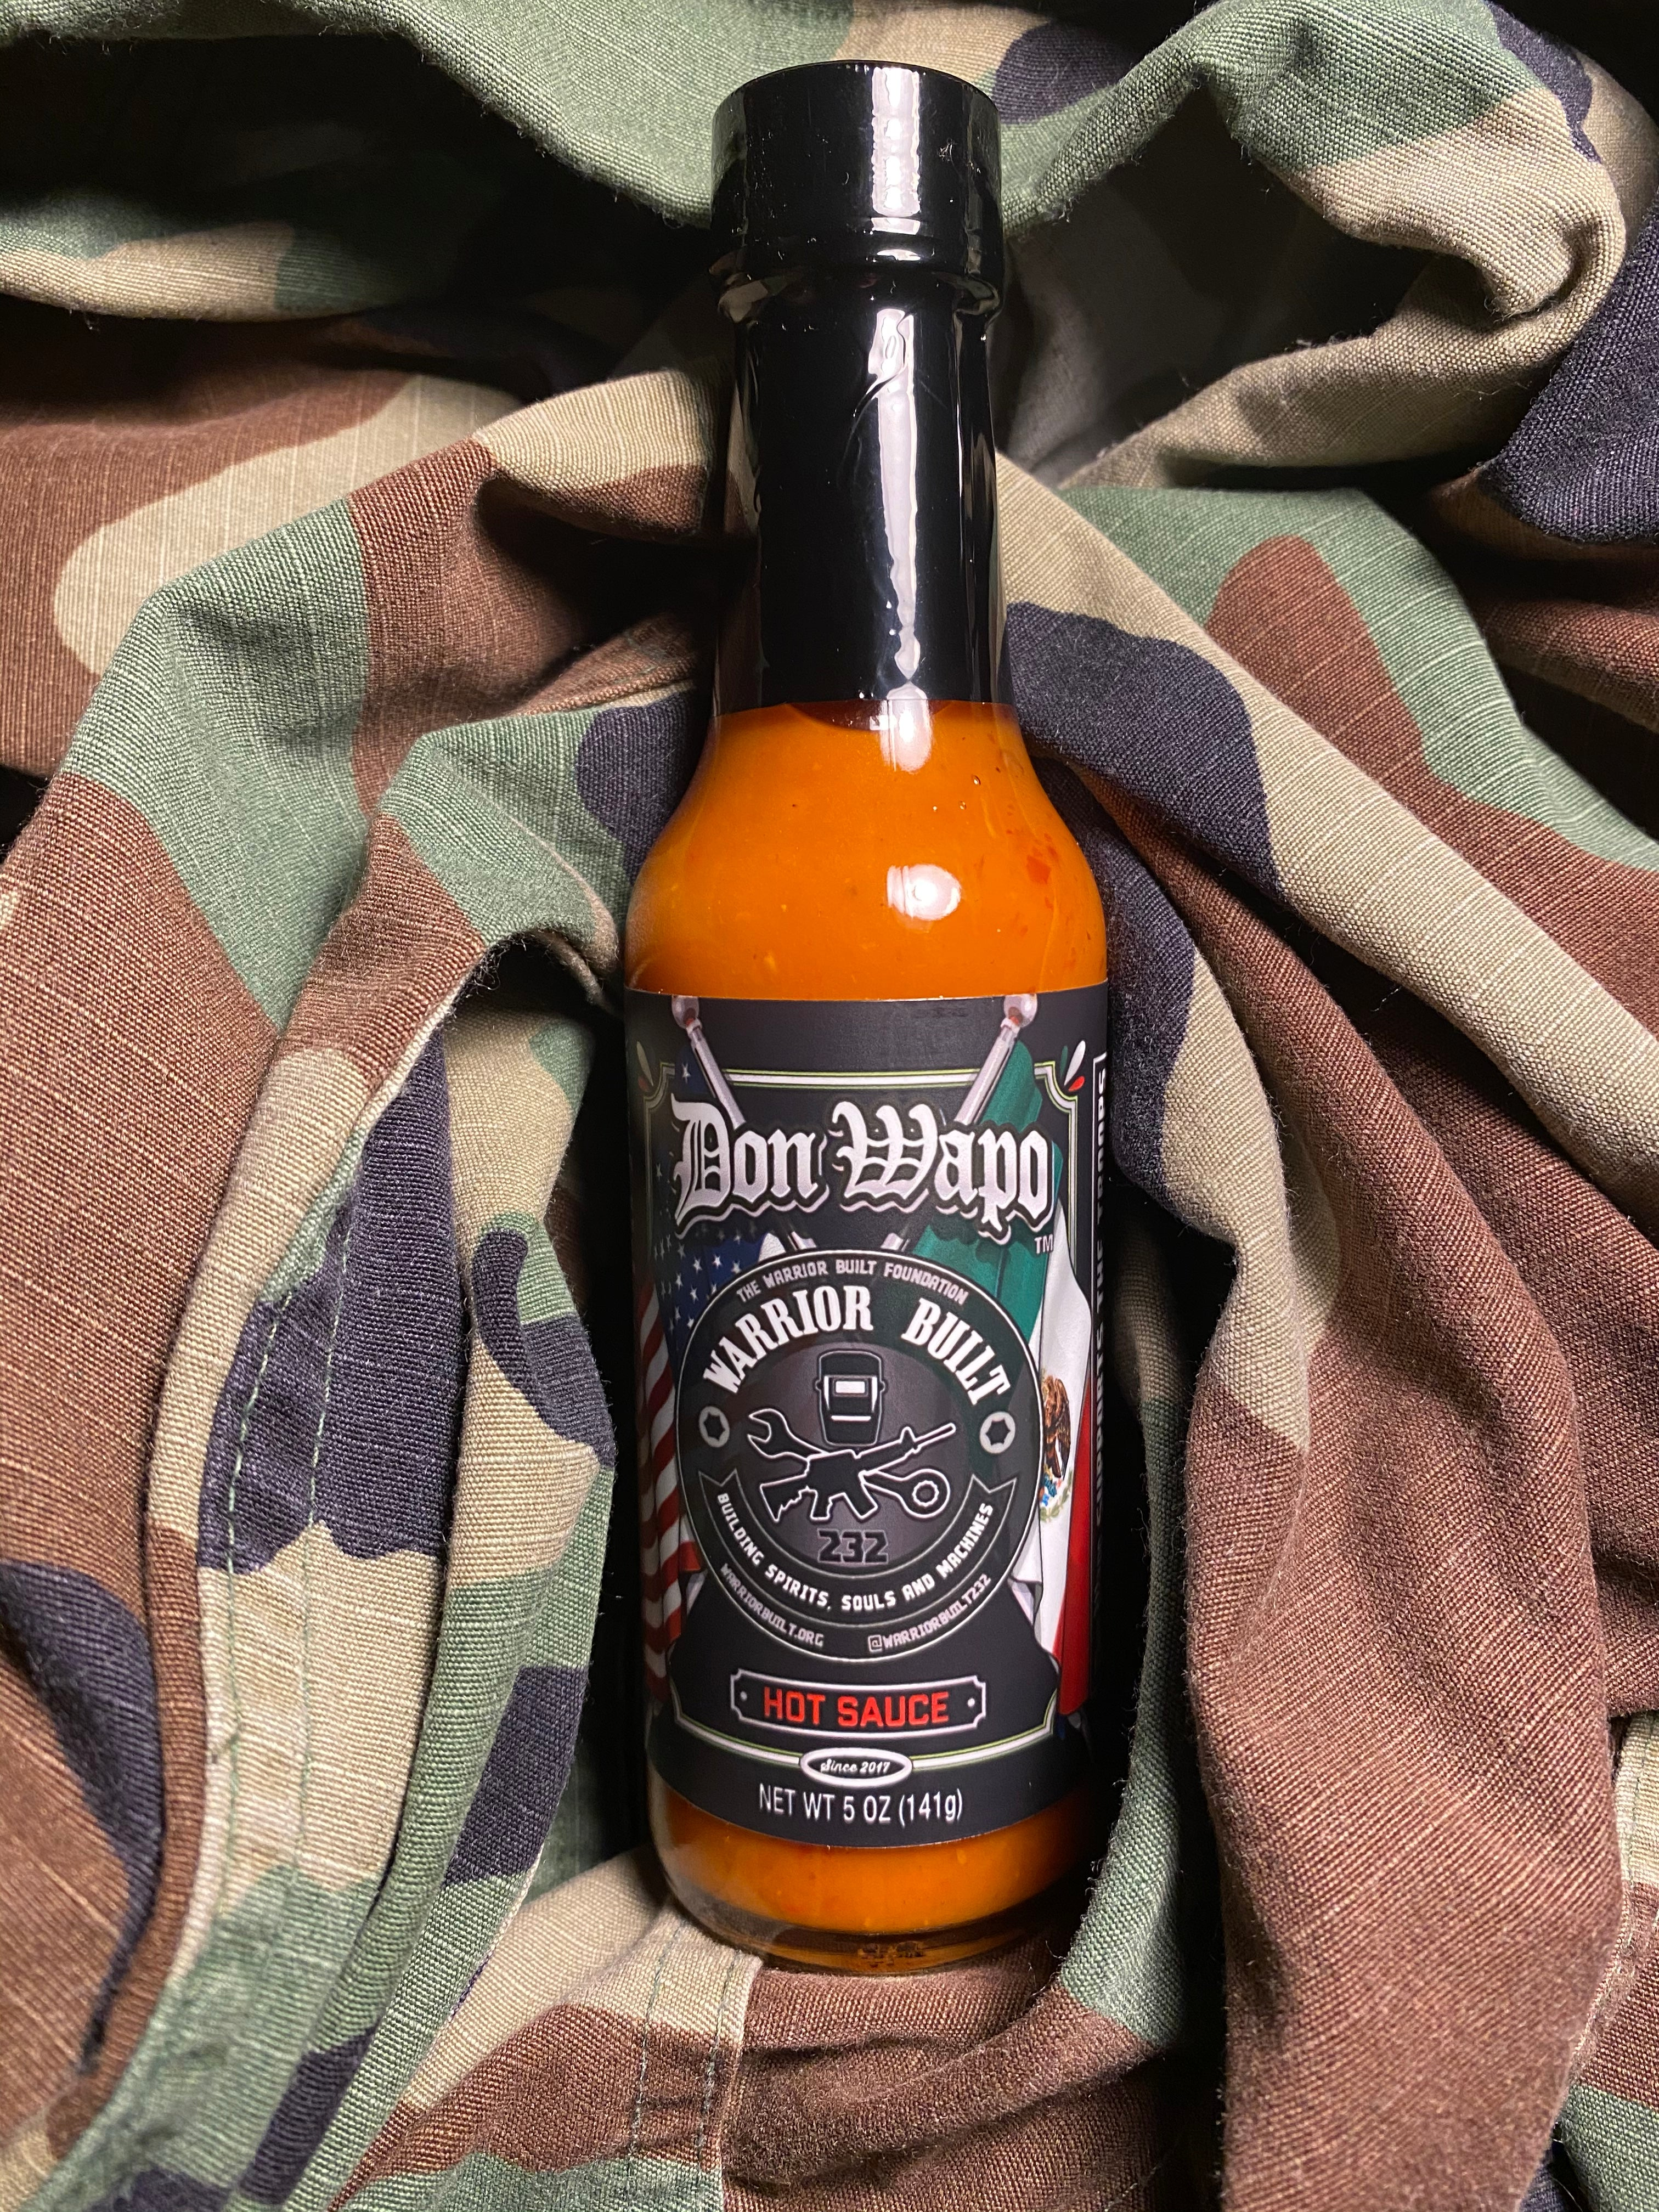 Wounded Veteranos Limited Edition RE-LABLE Don Wapo La Primera Colab Hot Sauce